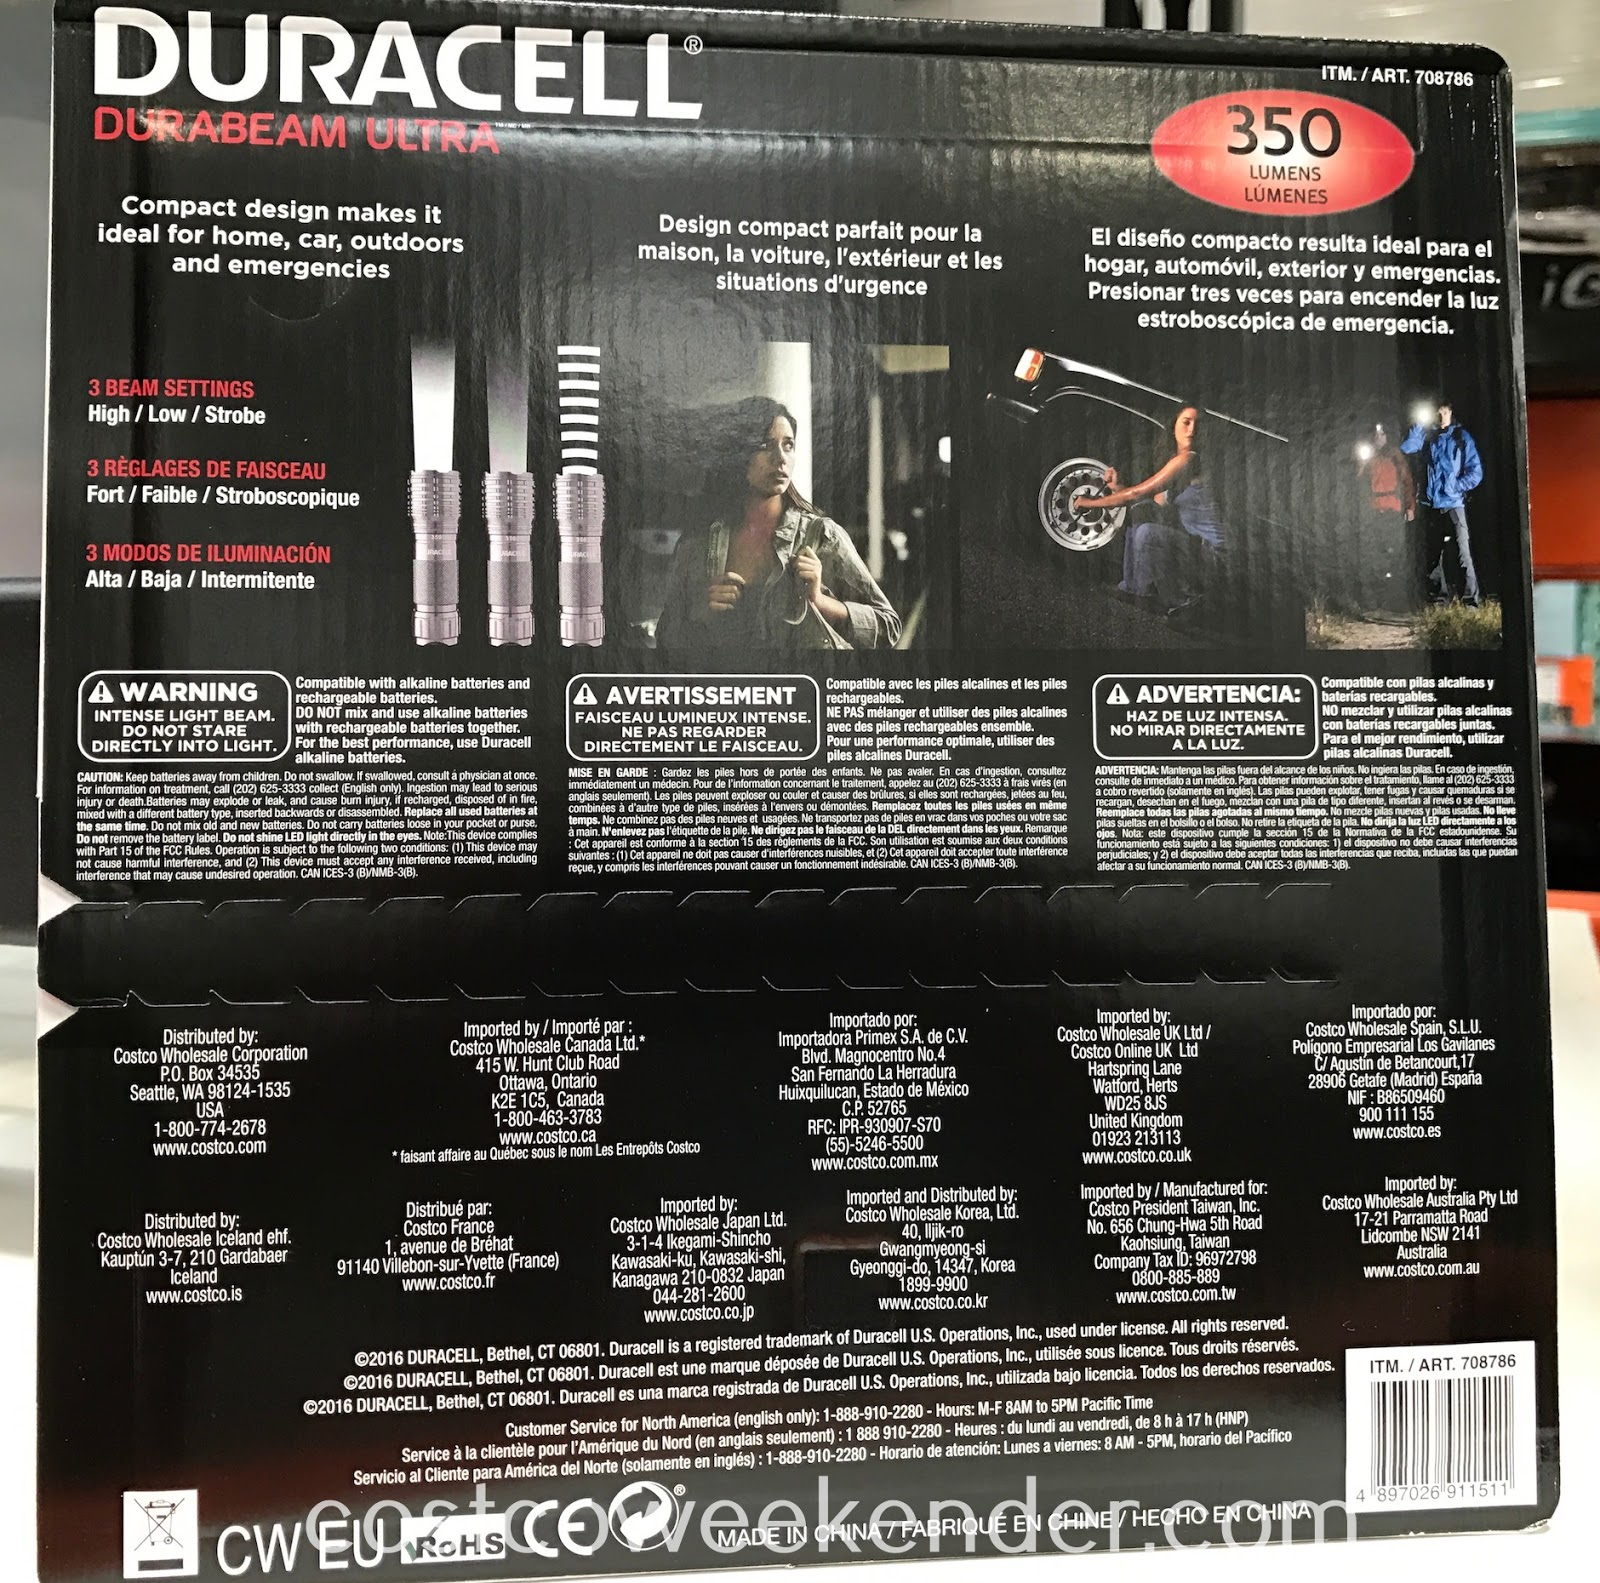 Costco 708786 - Duracell Durabeam Ultra LED Flashlight 350 Lumens: practical and great for many occasions